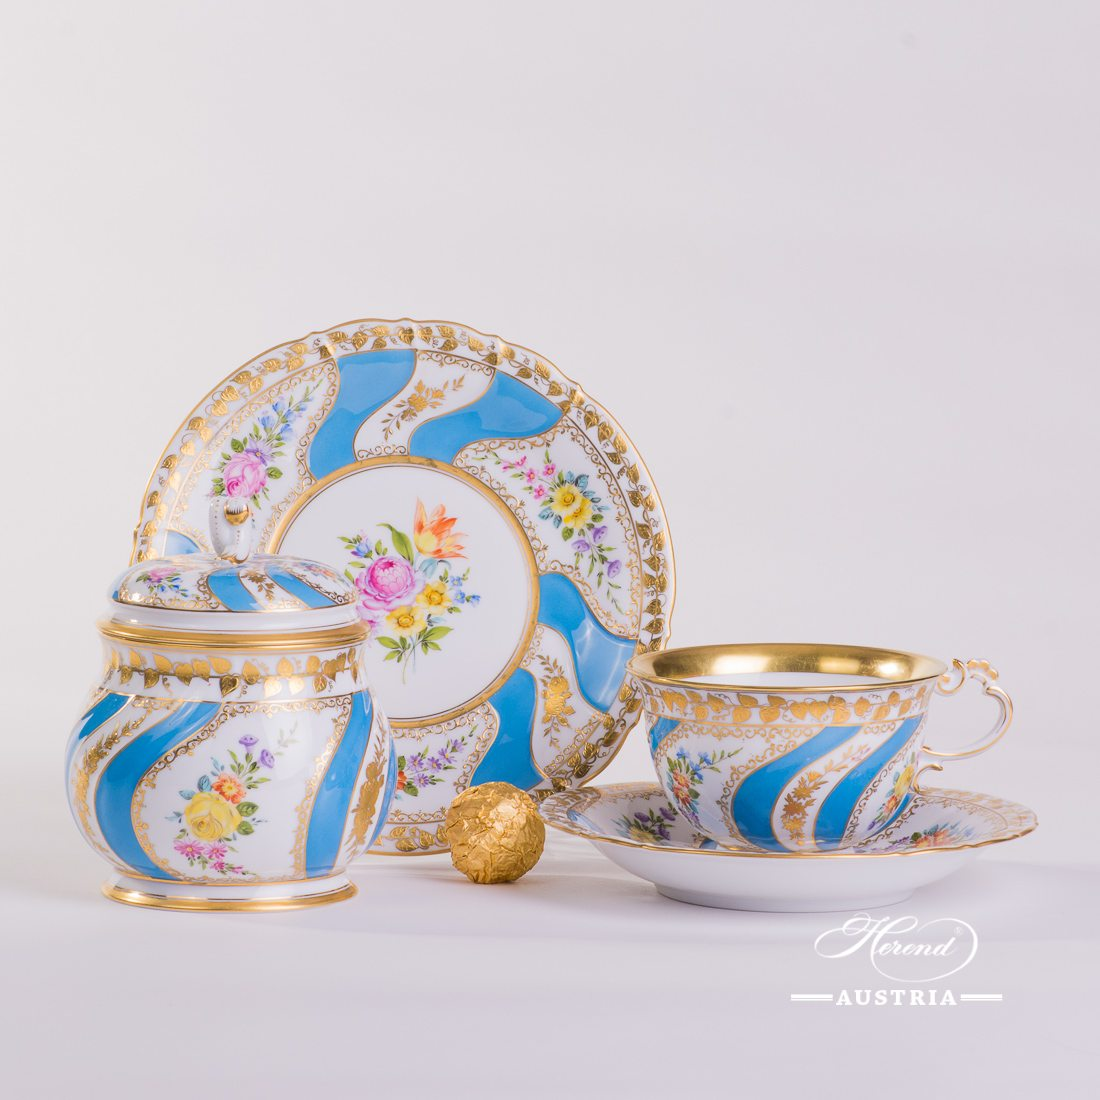 Colette Tea-Set for one Person - Herend Porcelain